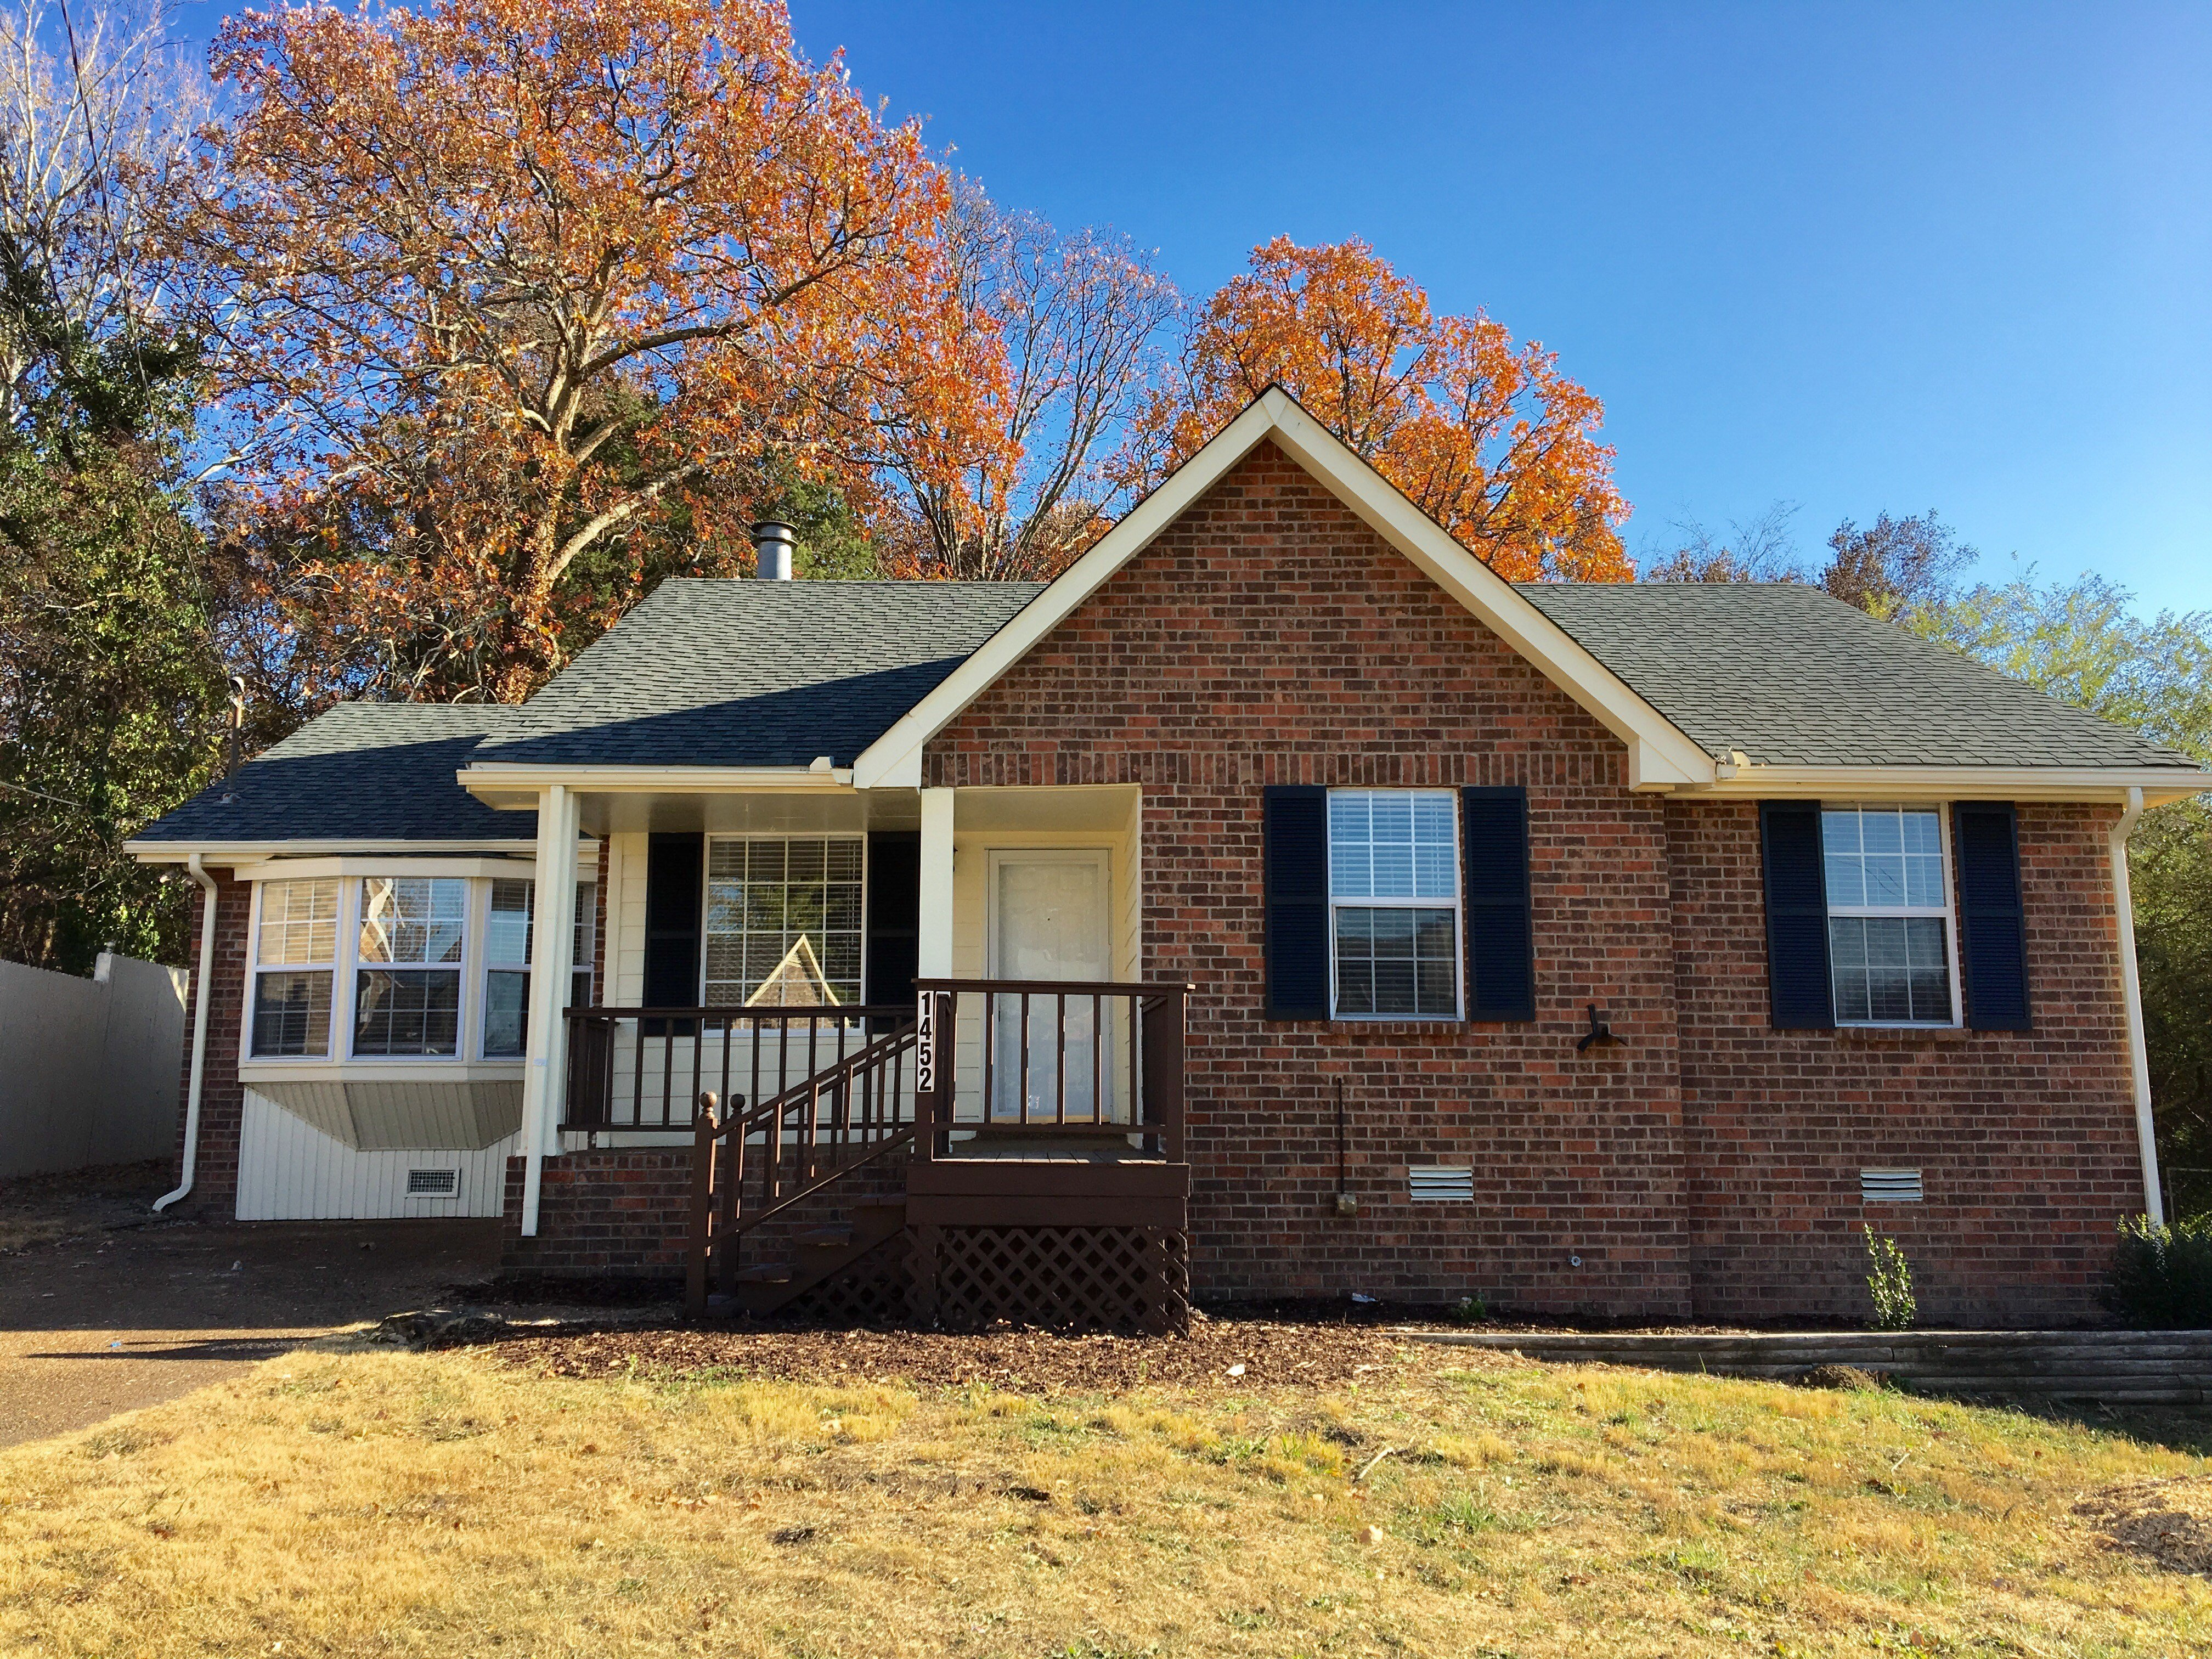 Best 1452 Rice Hill Cir Nashville Tn 37013 3 Bedroom With Pictures